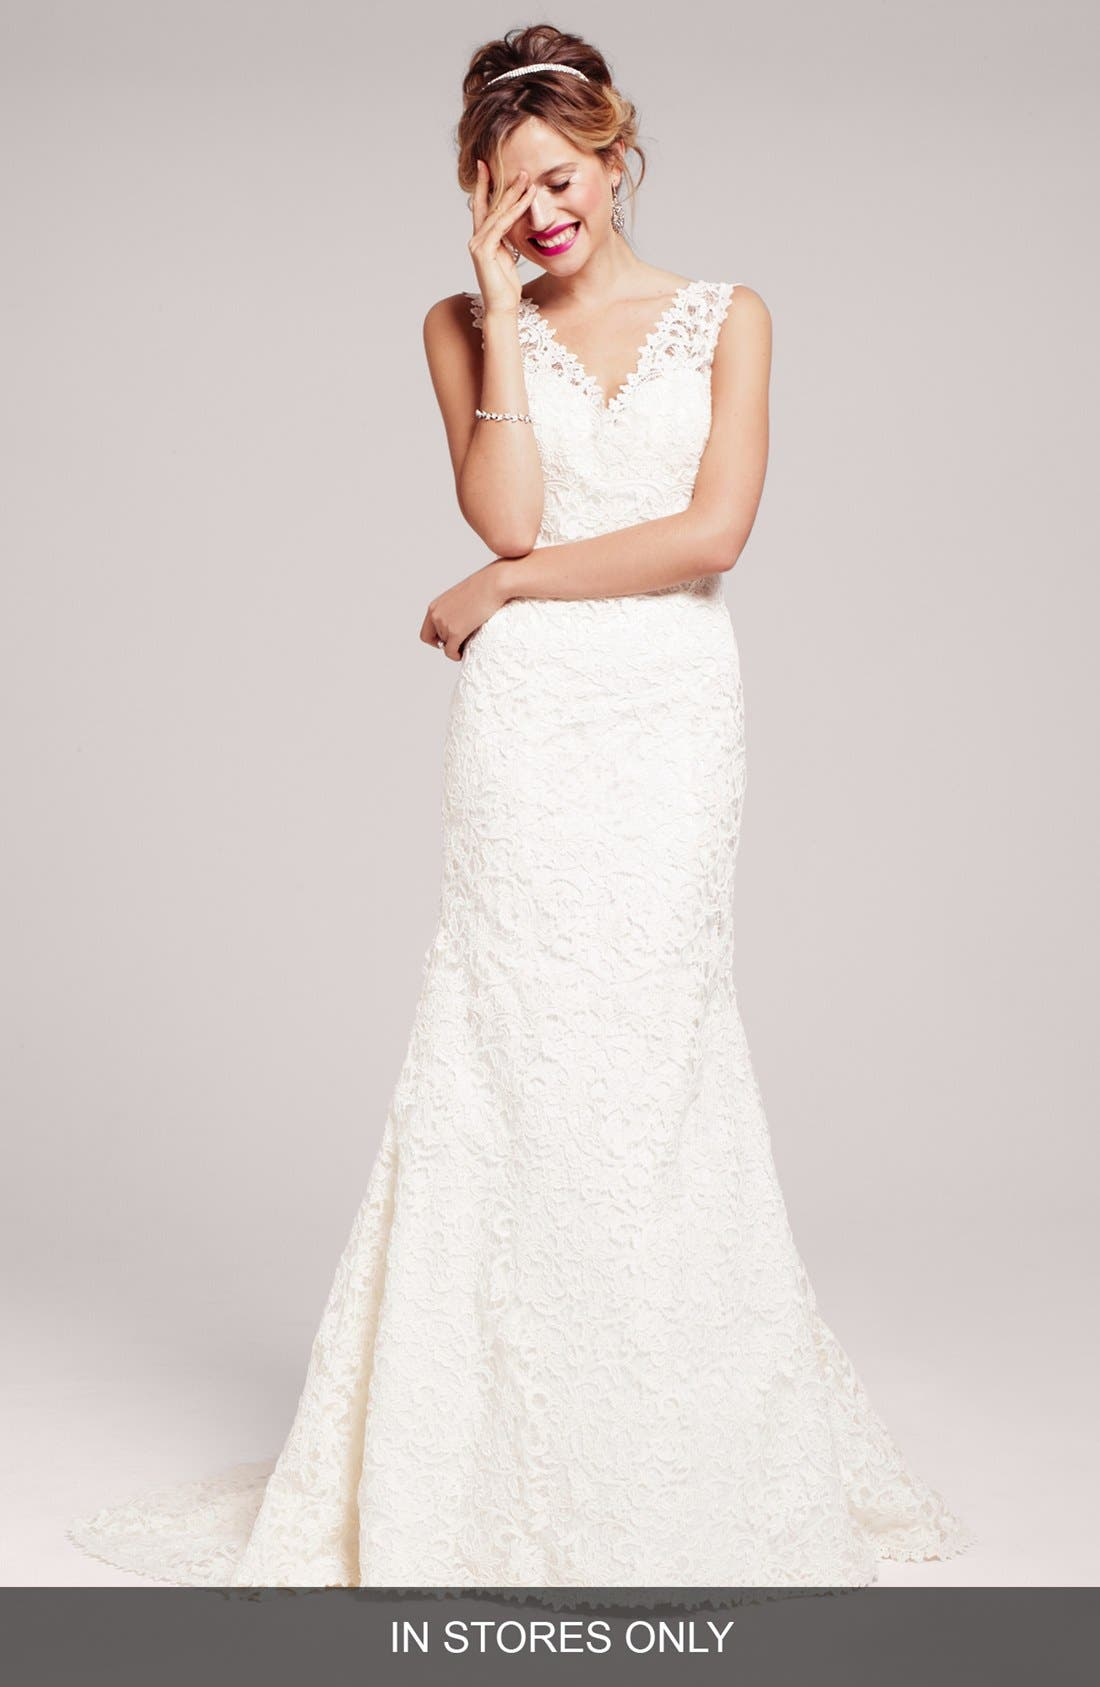 Main Image - Two by Rosa Clara 'Dakota' Lace Trumpet Wedding Dress (In Stores Only)